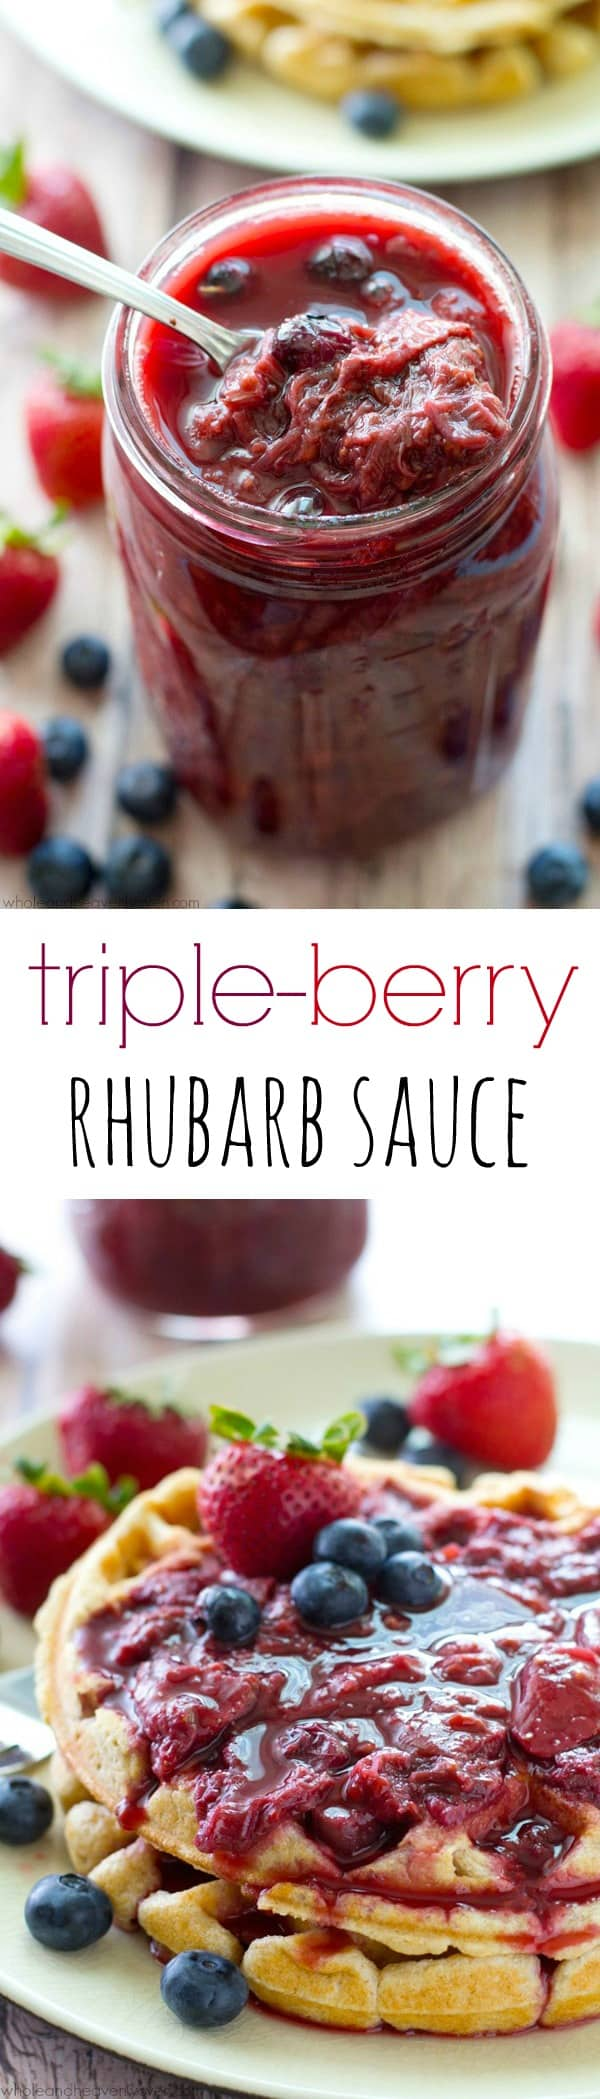 Sweet 'n' tangy and loaded with a triple-whammy of berries and lots of fresh rhubarb, this summery berry sauce is amazing over pancakes, waffles, and even ice cream! @WholeHeavenly